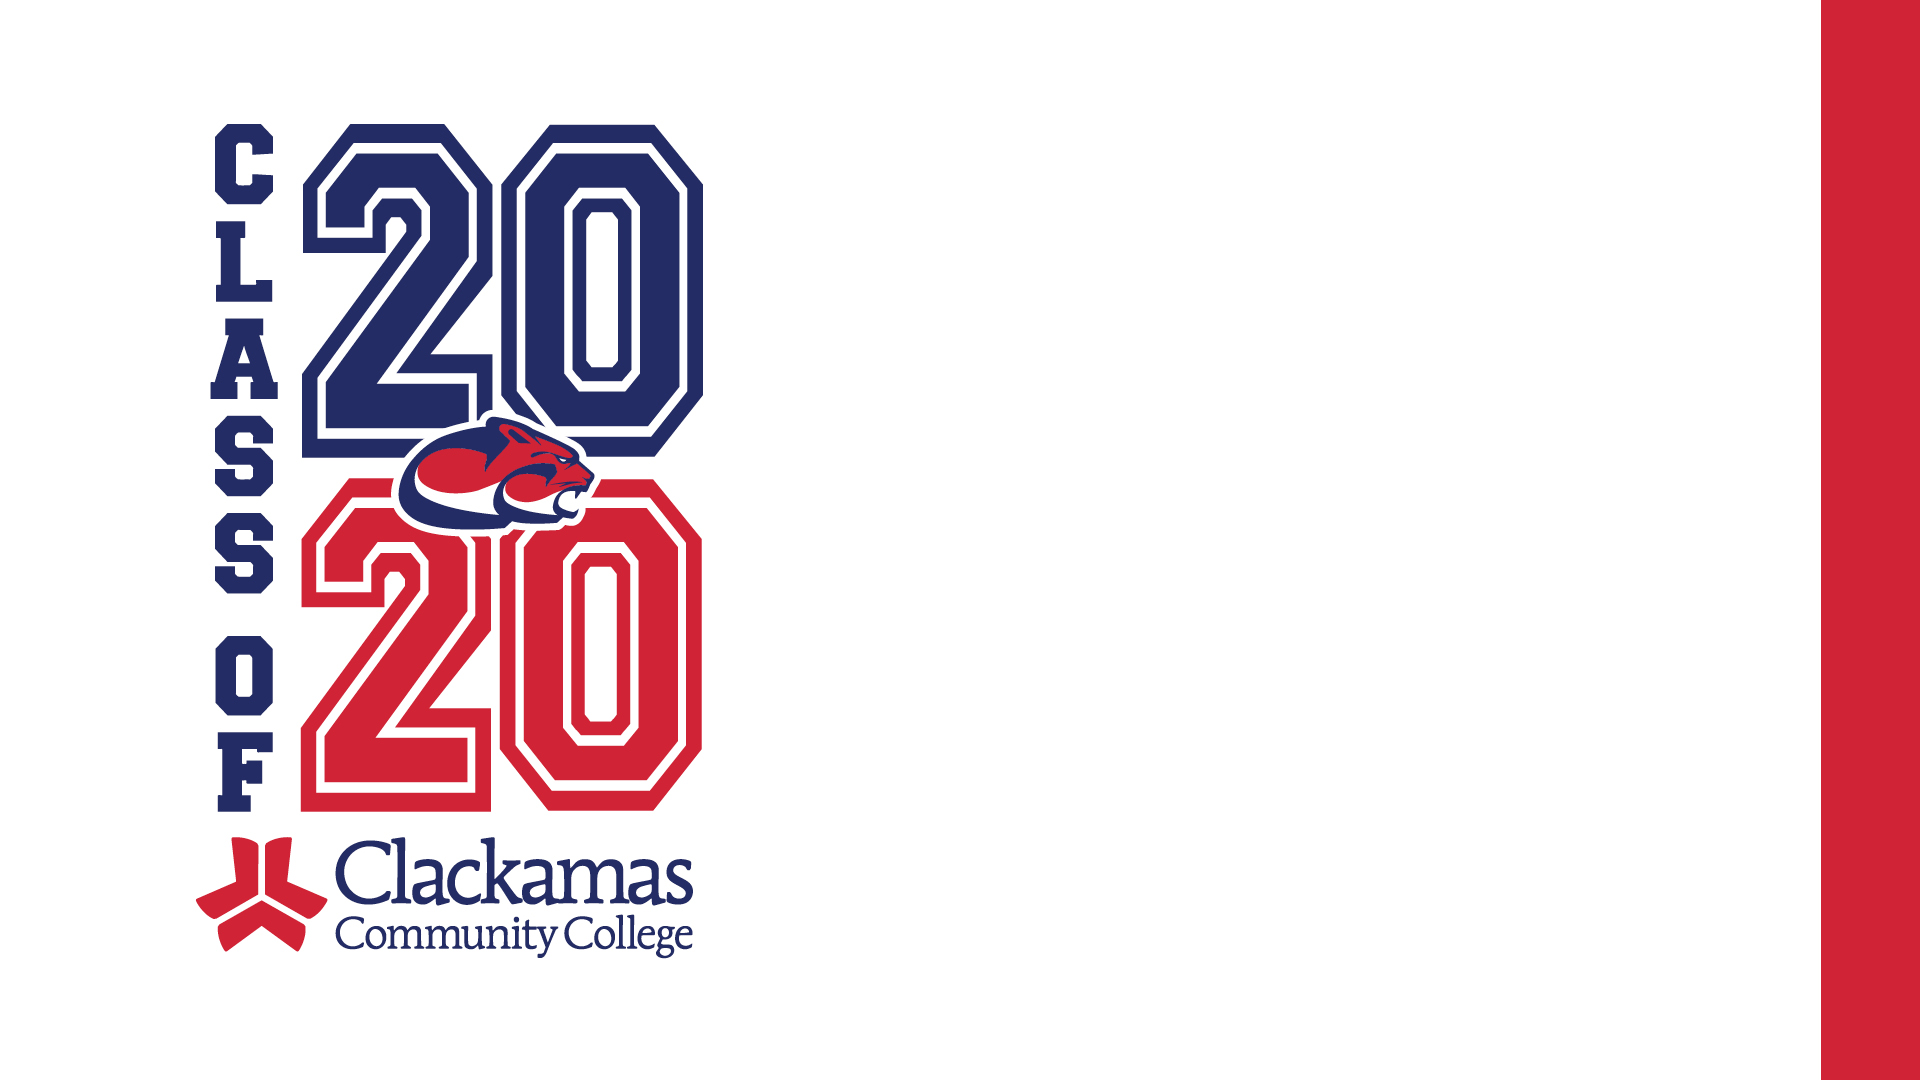 Zoom background with white background, red and blue Class of 2020 text and red vertical banner on the right